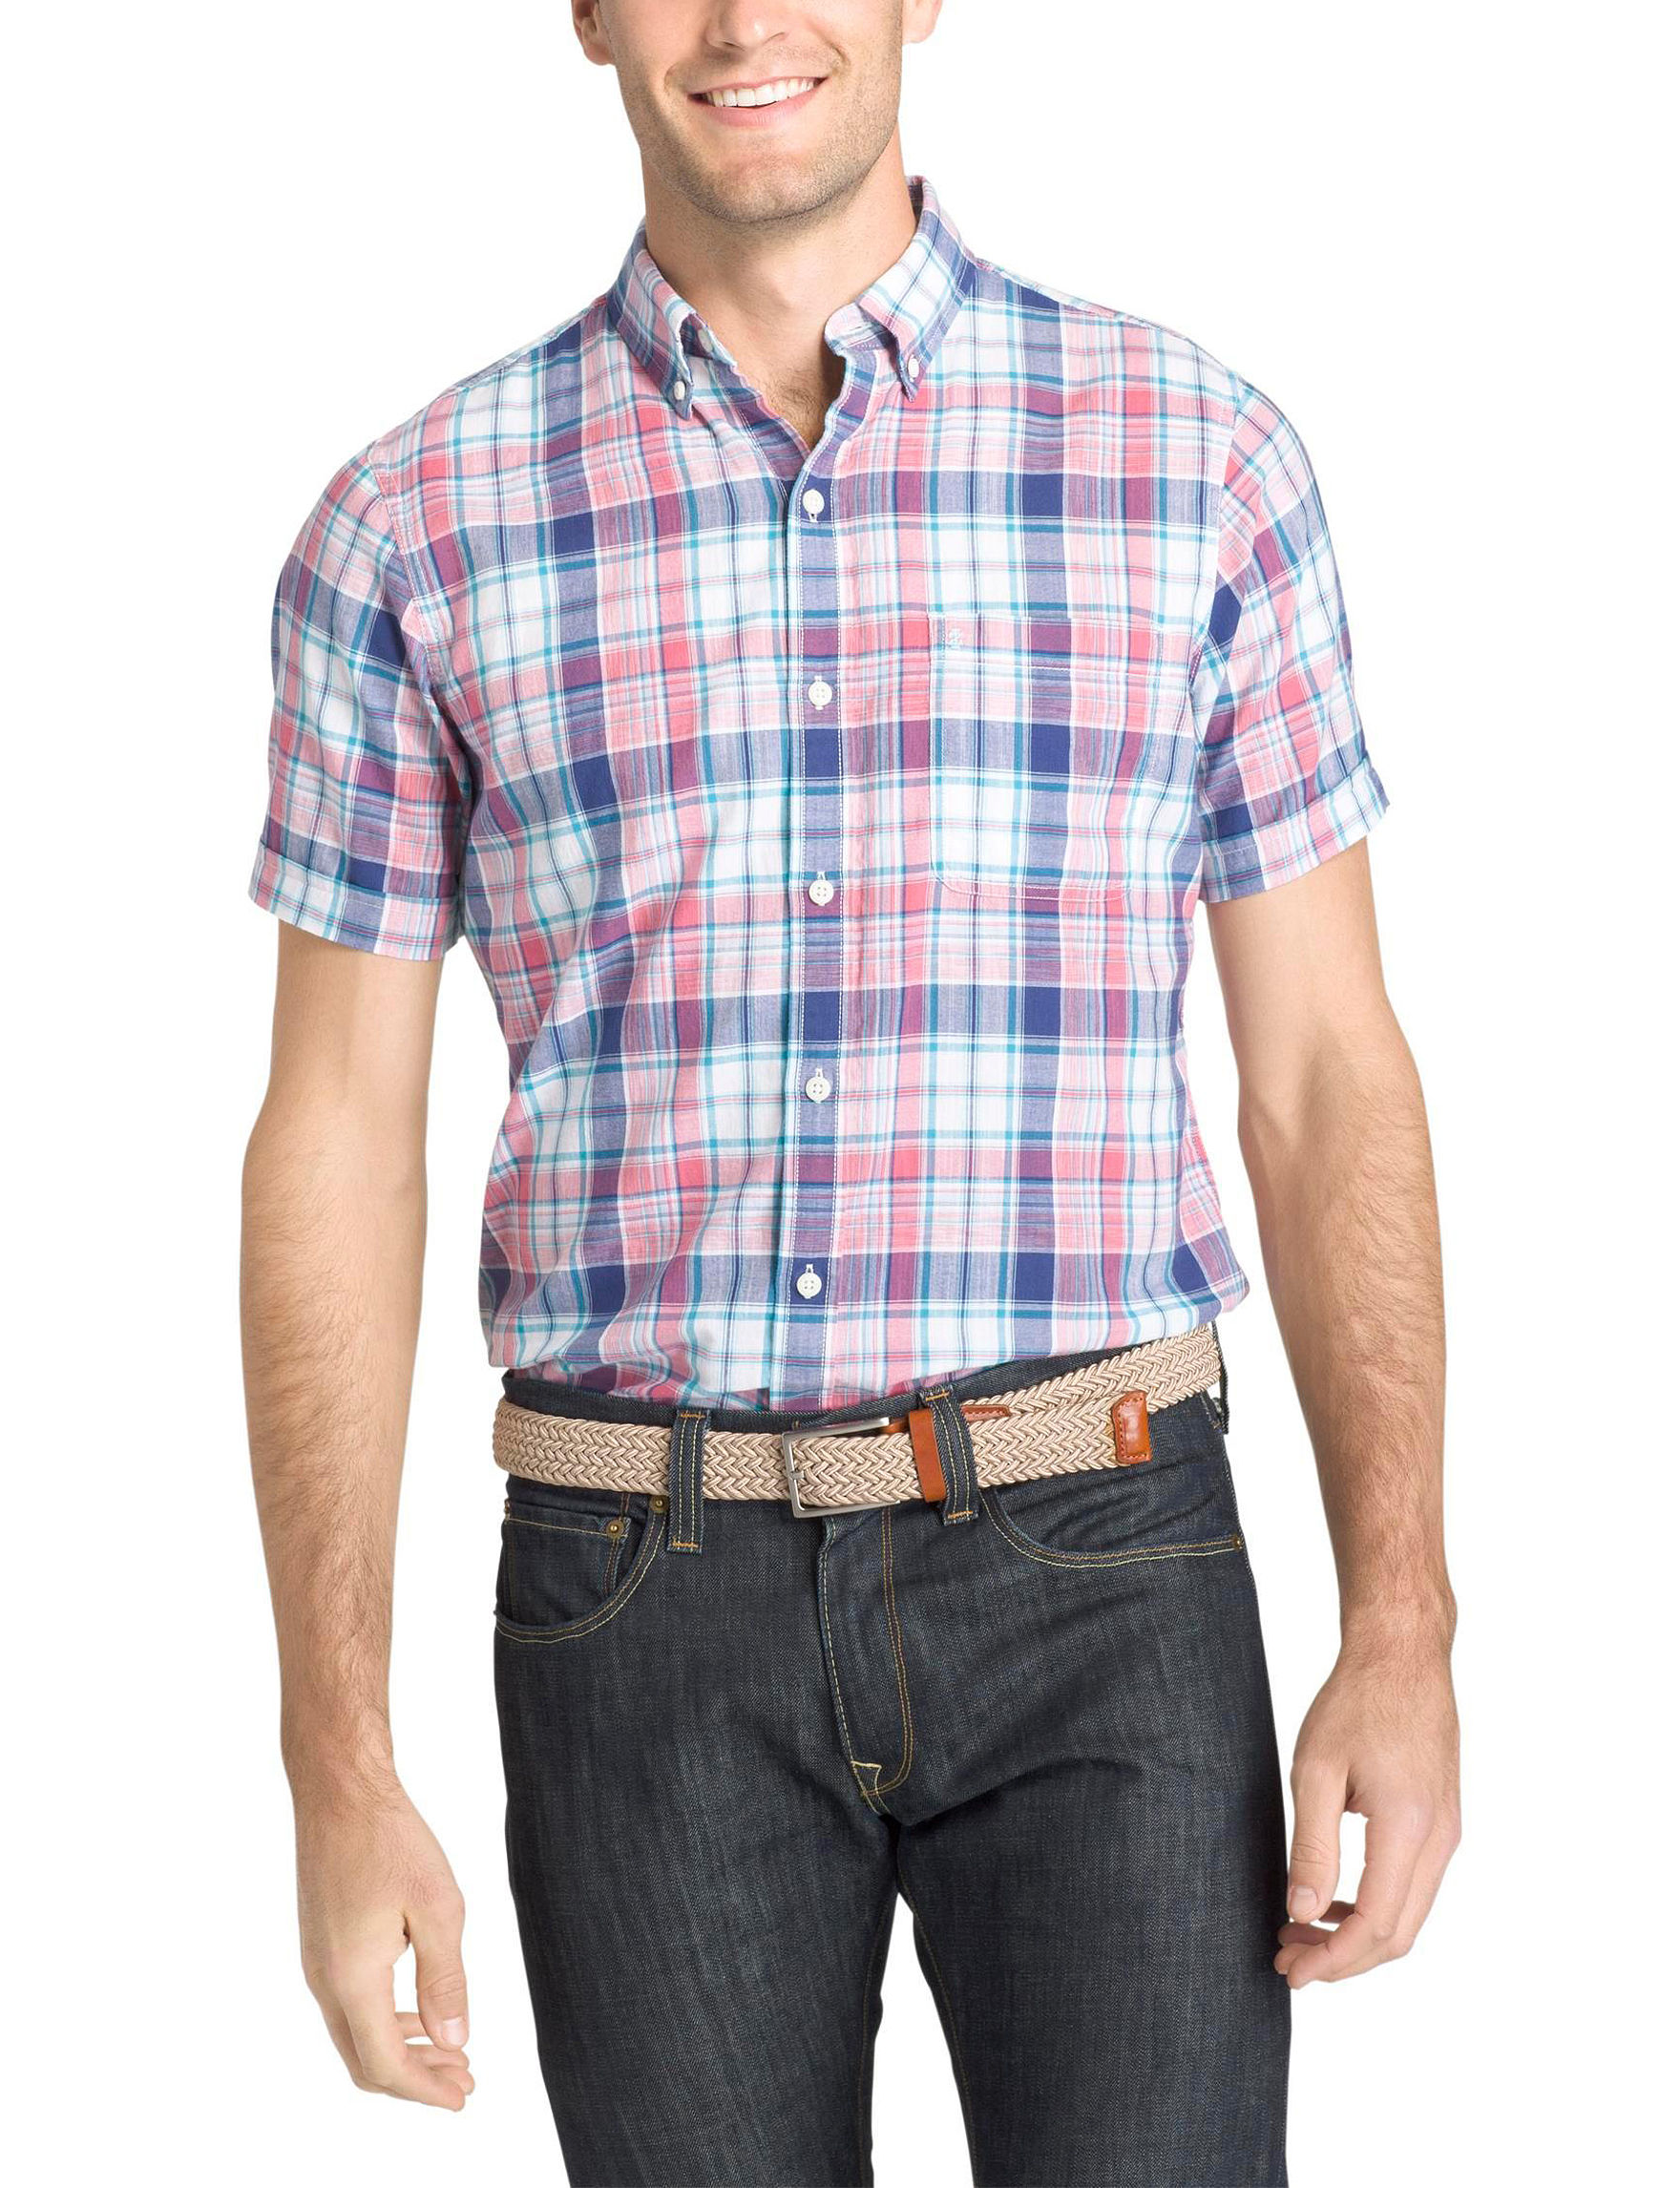 Izod Blue / Pink Casual Button Down Shirts